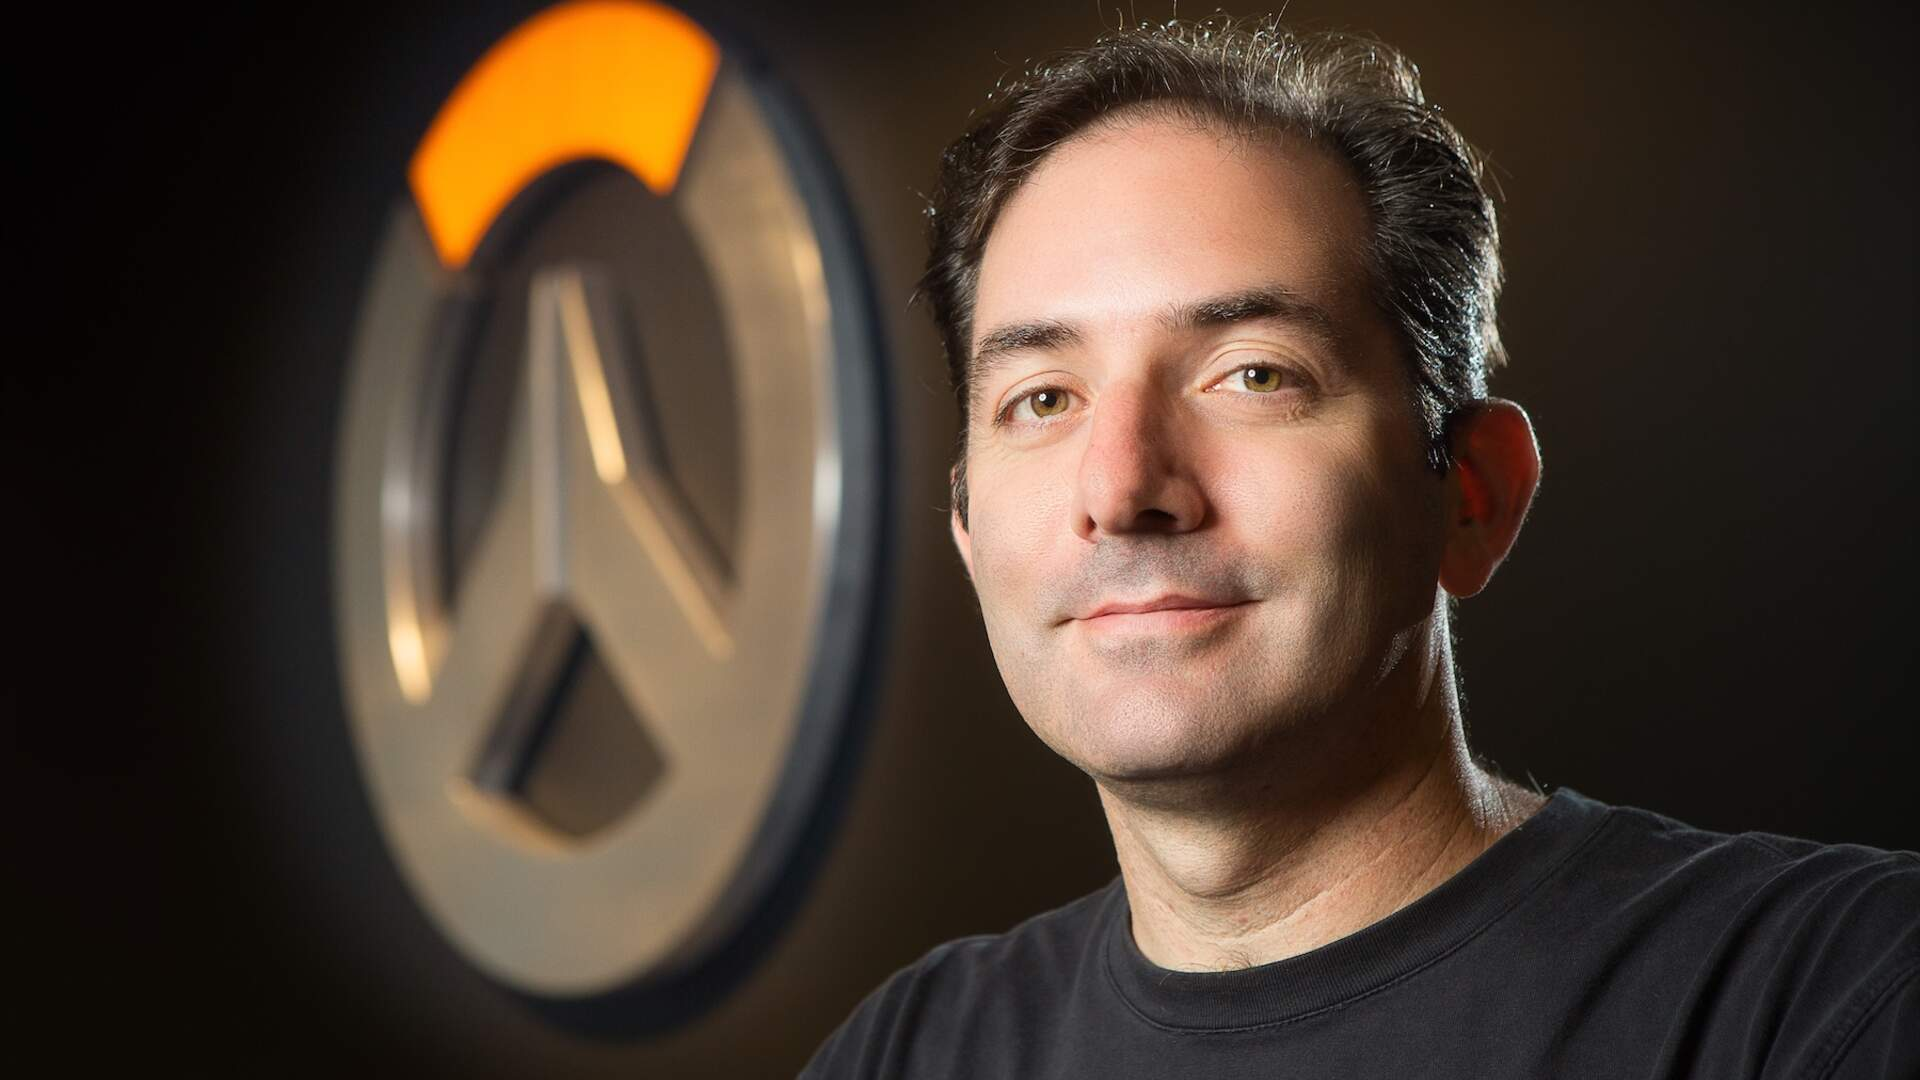 Overwatch Director Jeff Kaplan Just Threw in His Support for Blitzchung